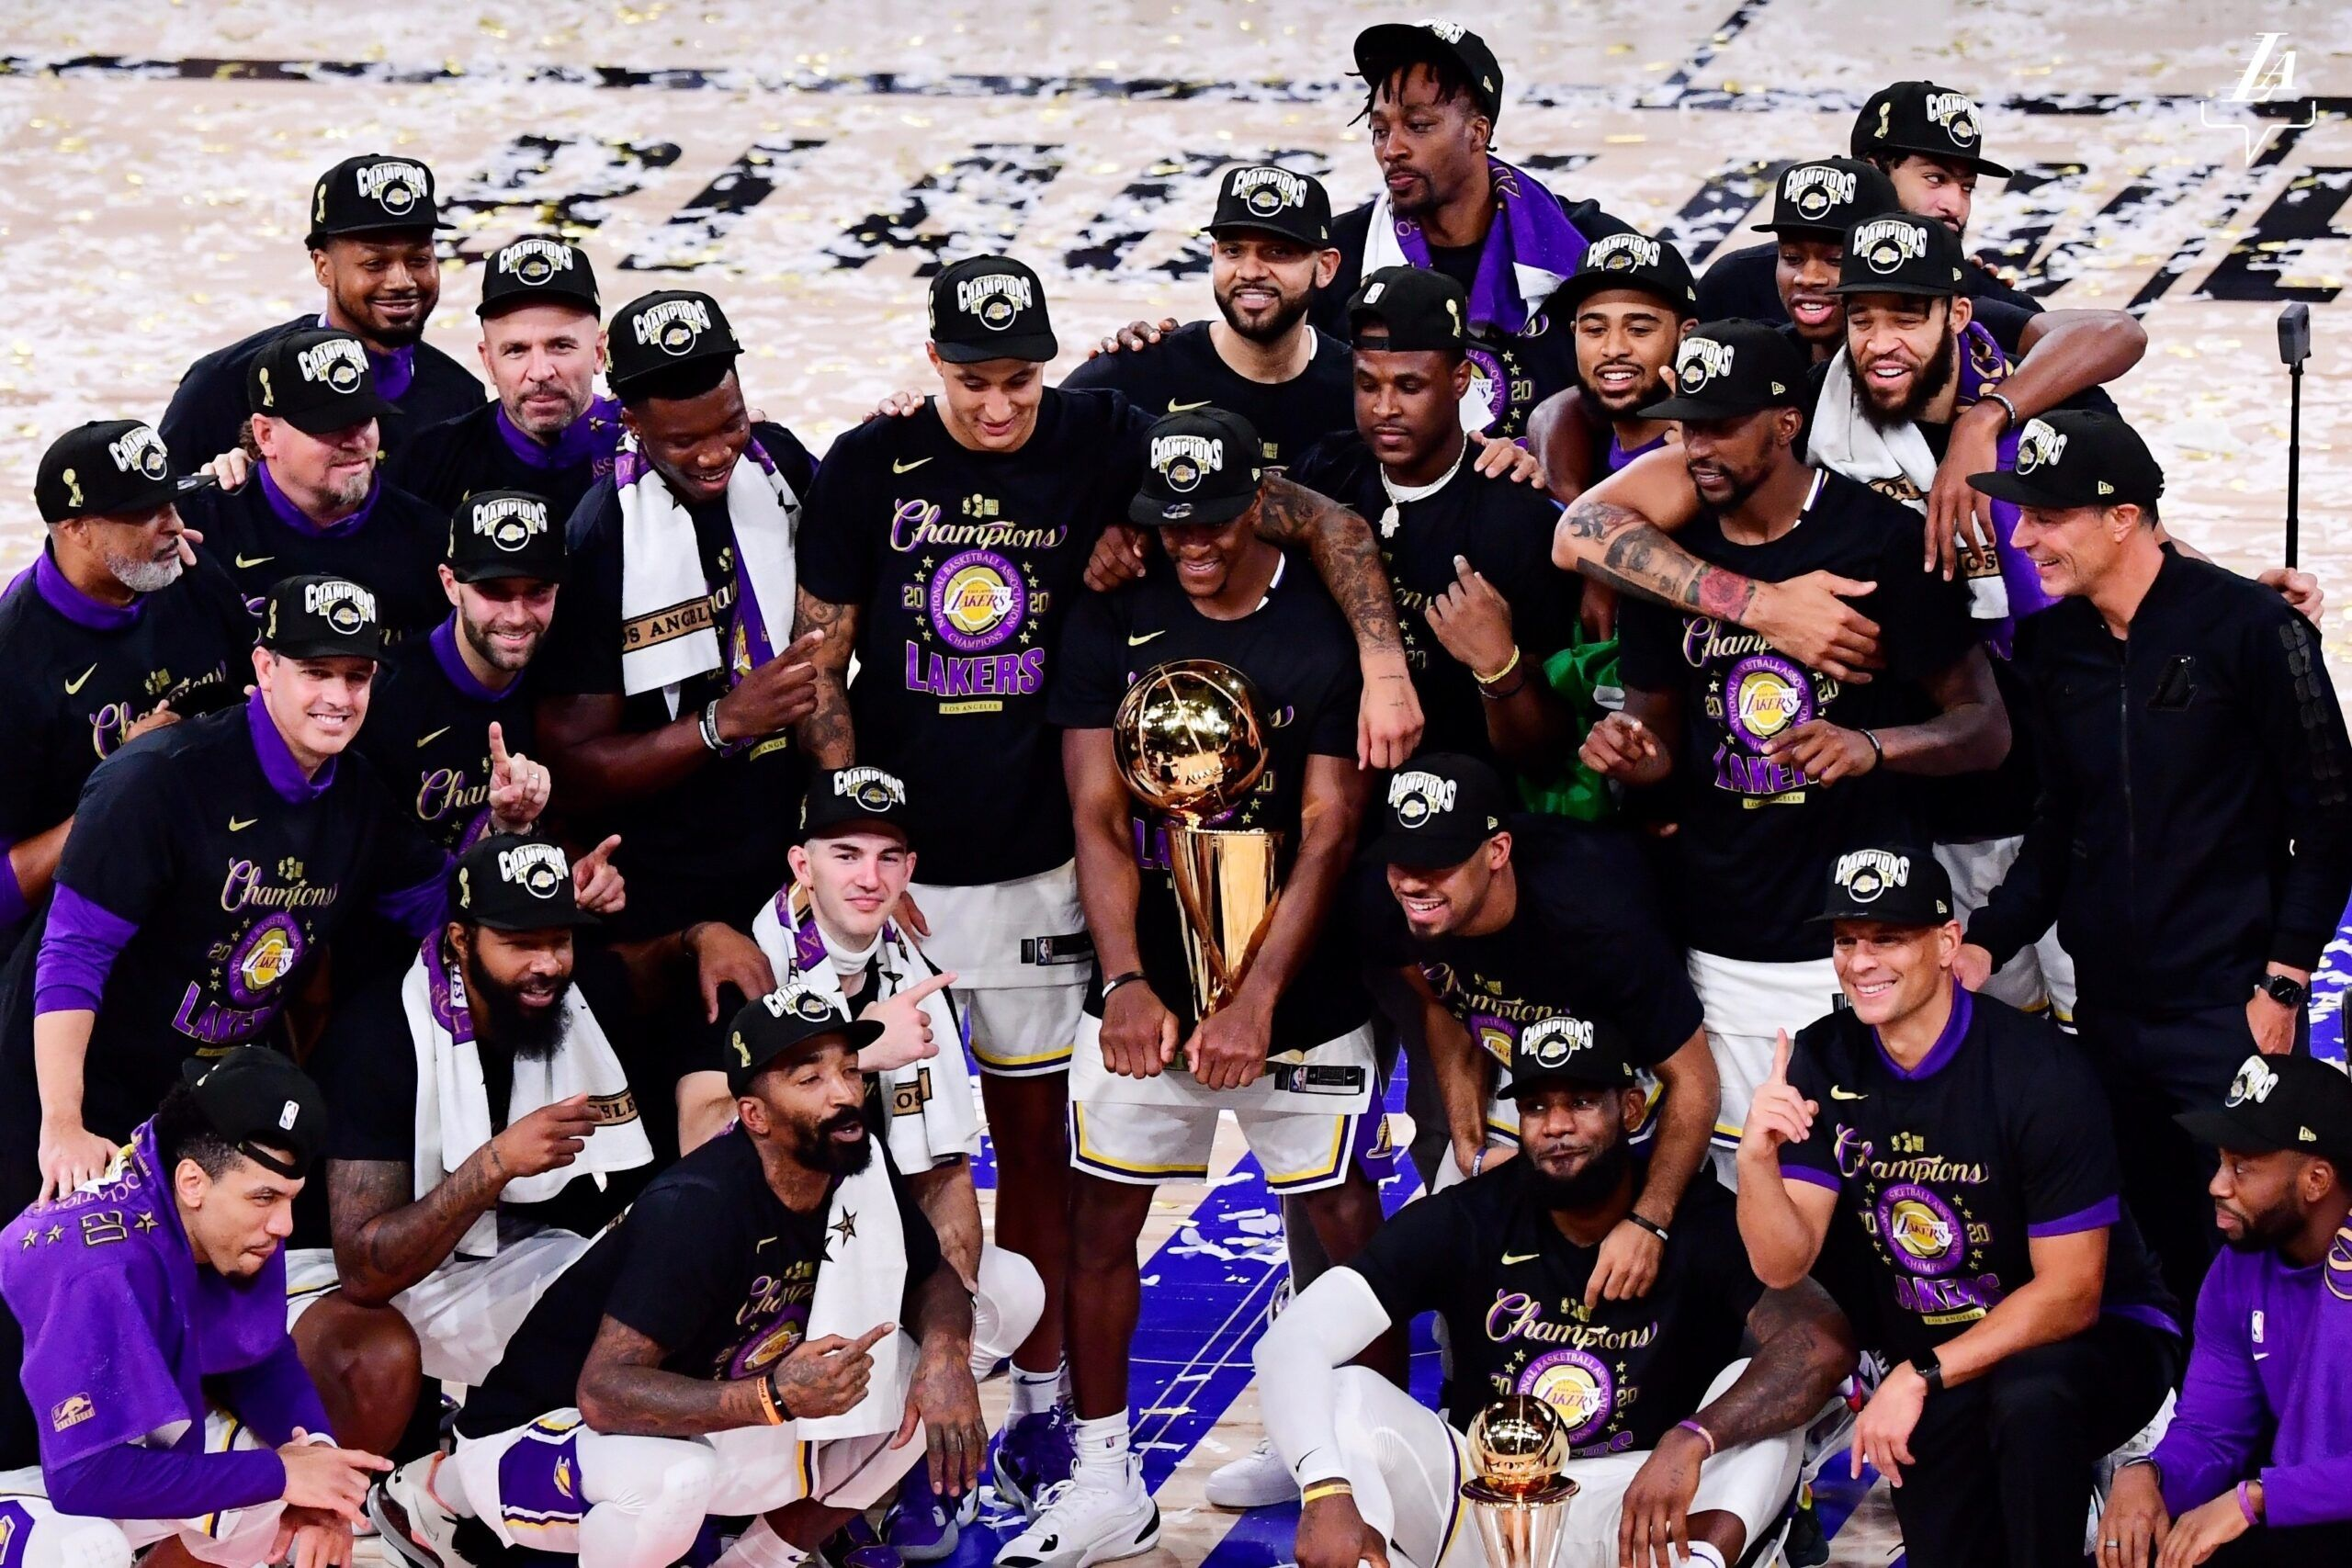 Lakers campeones 2020